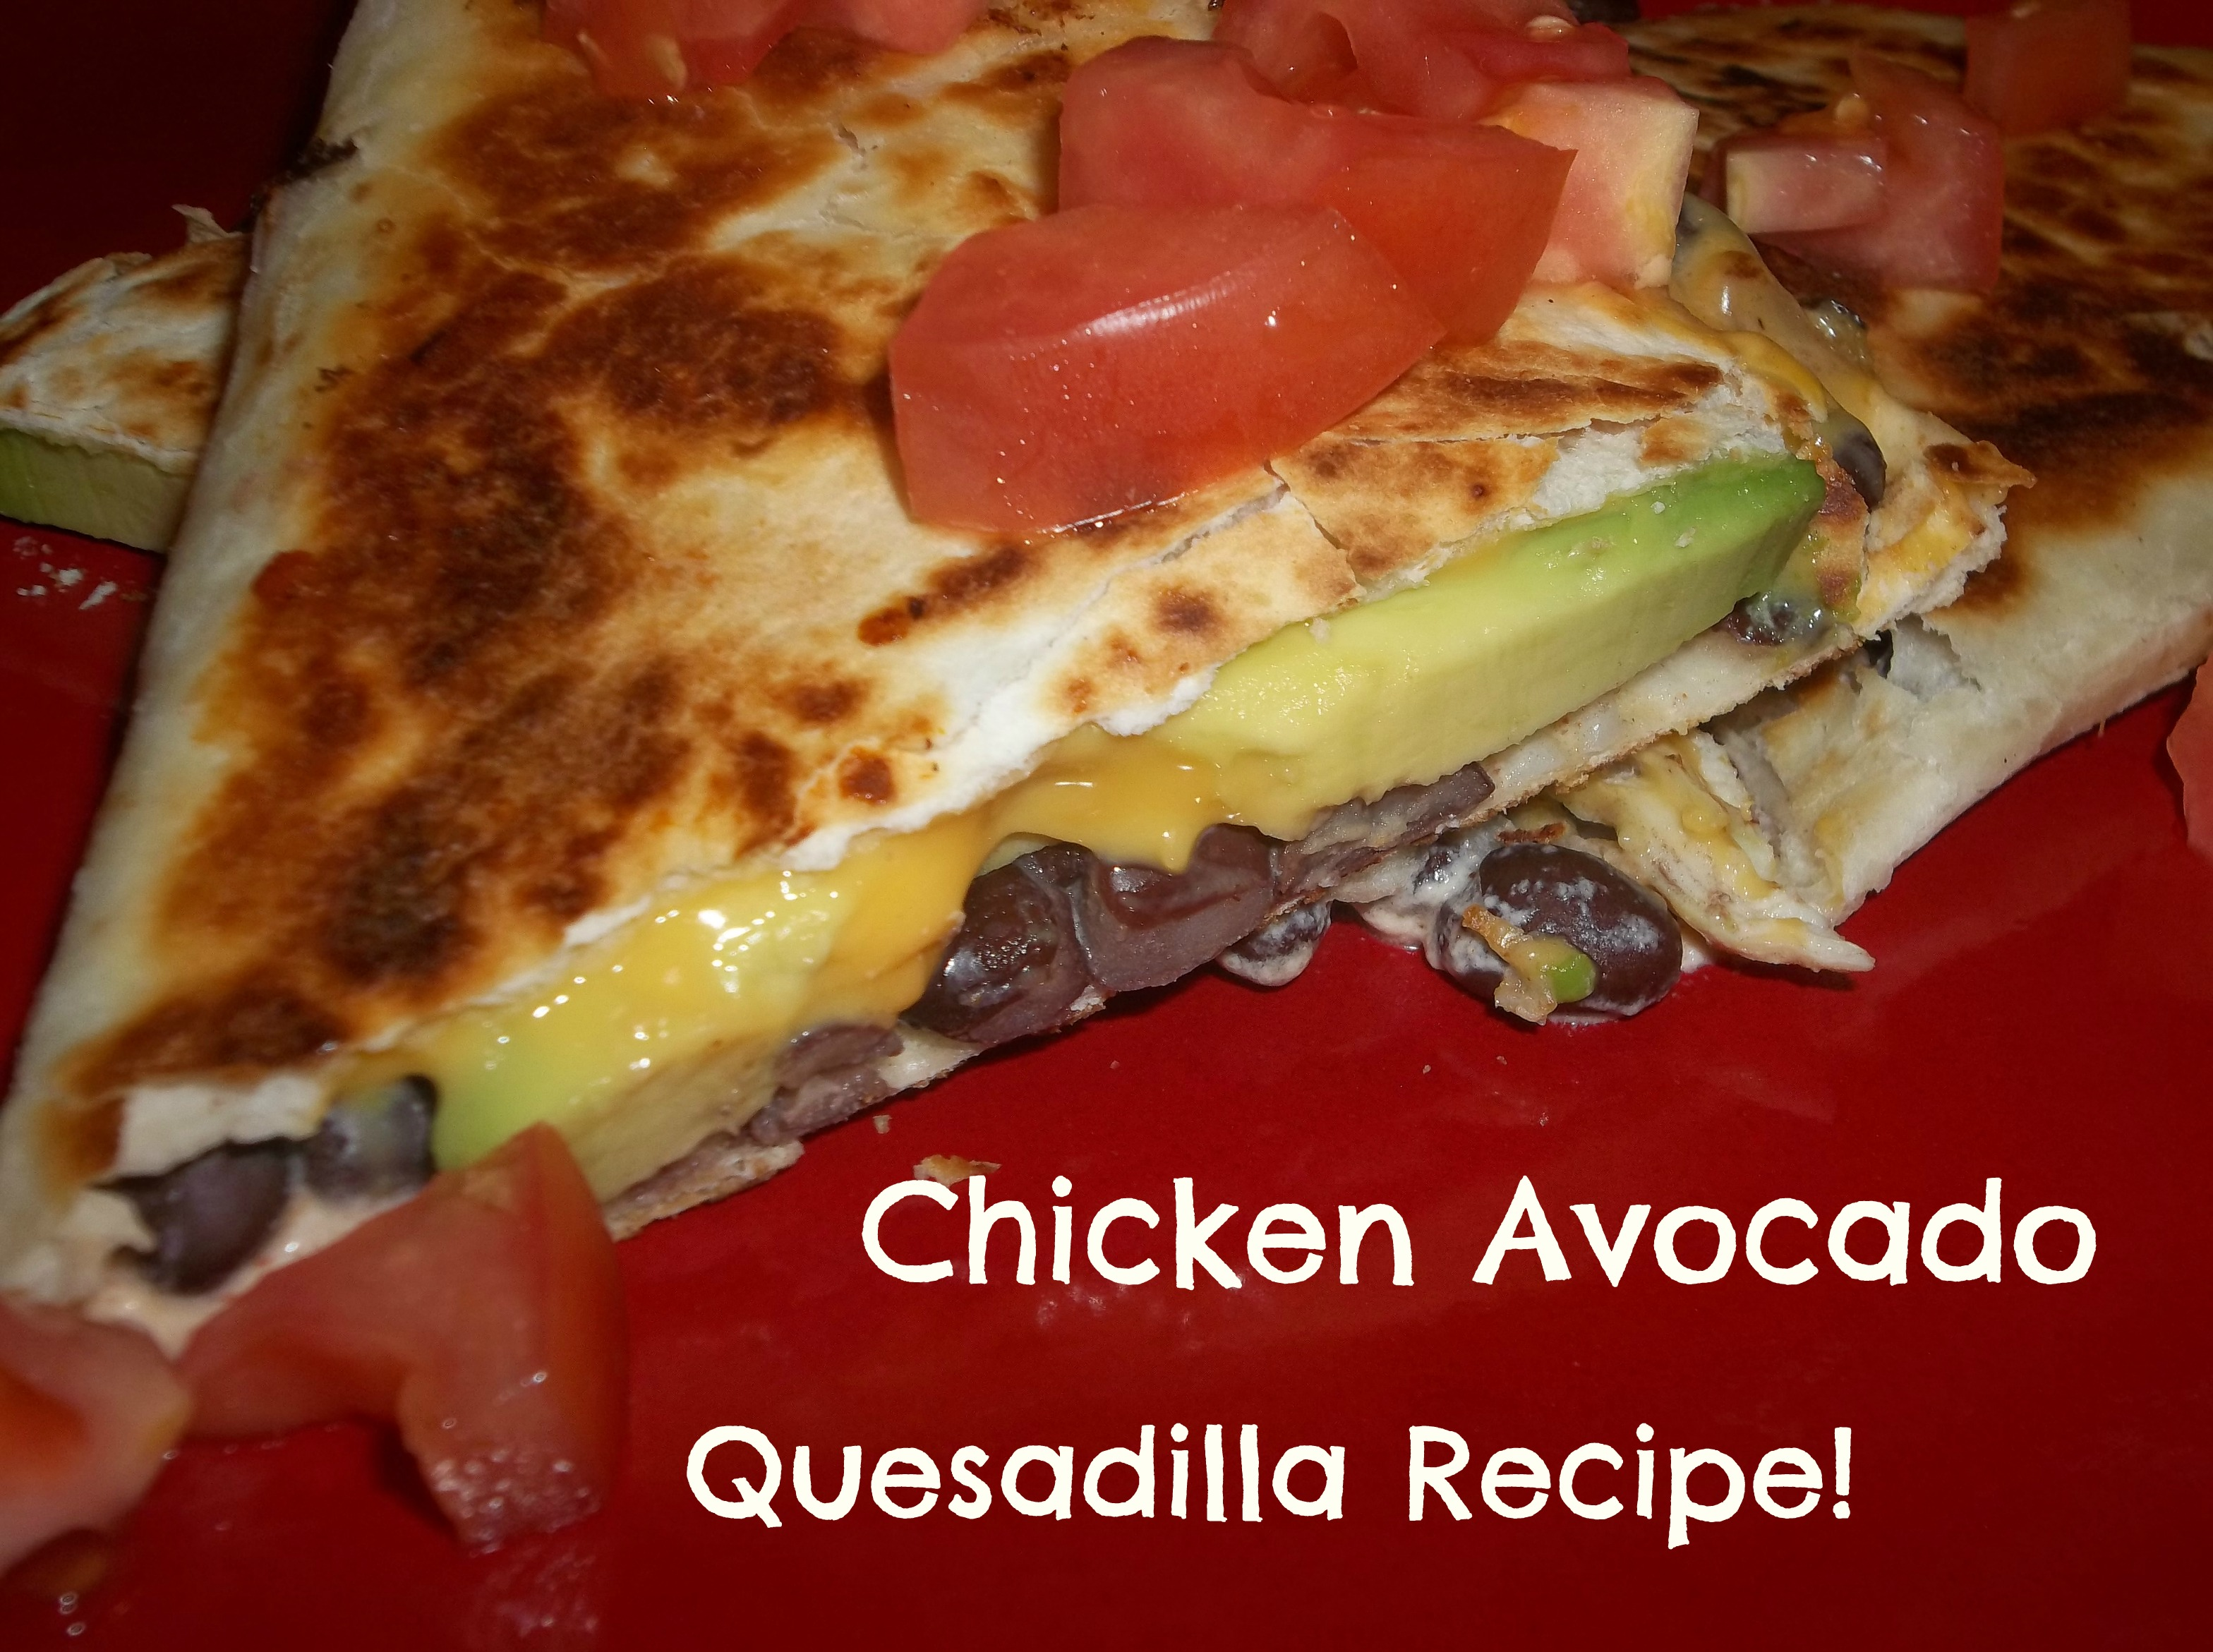 To make Chicken Avocado Quesadillas, you will need: